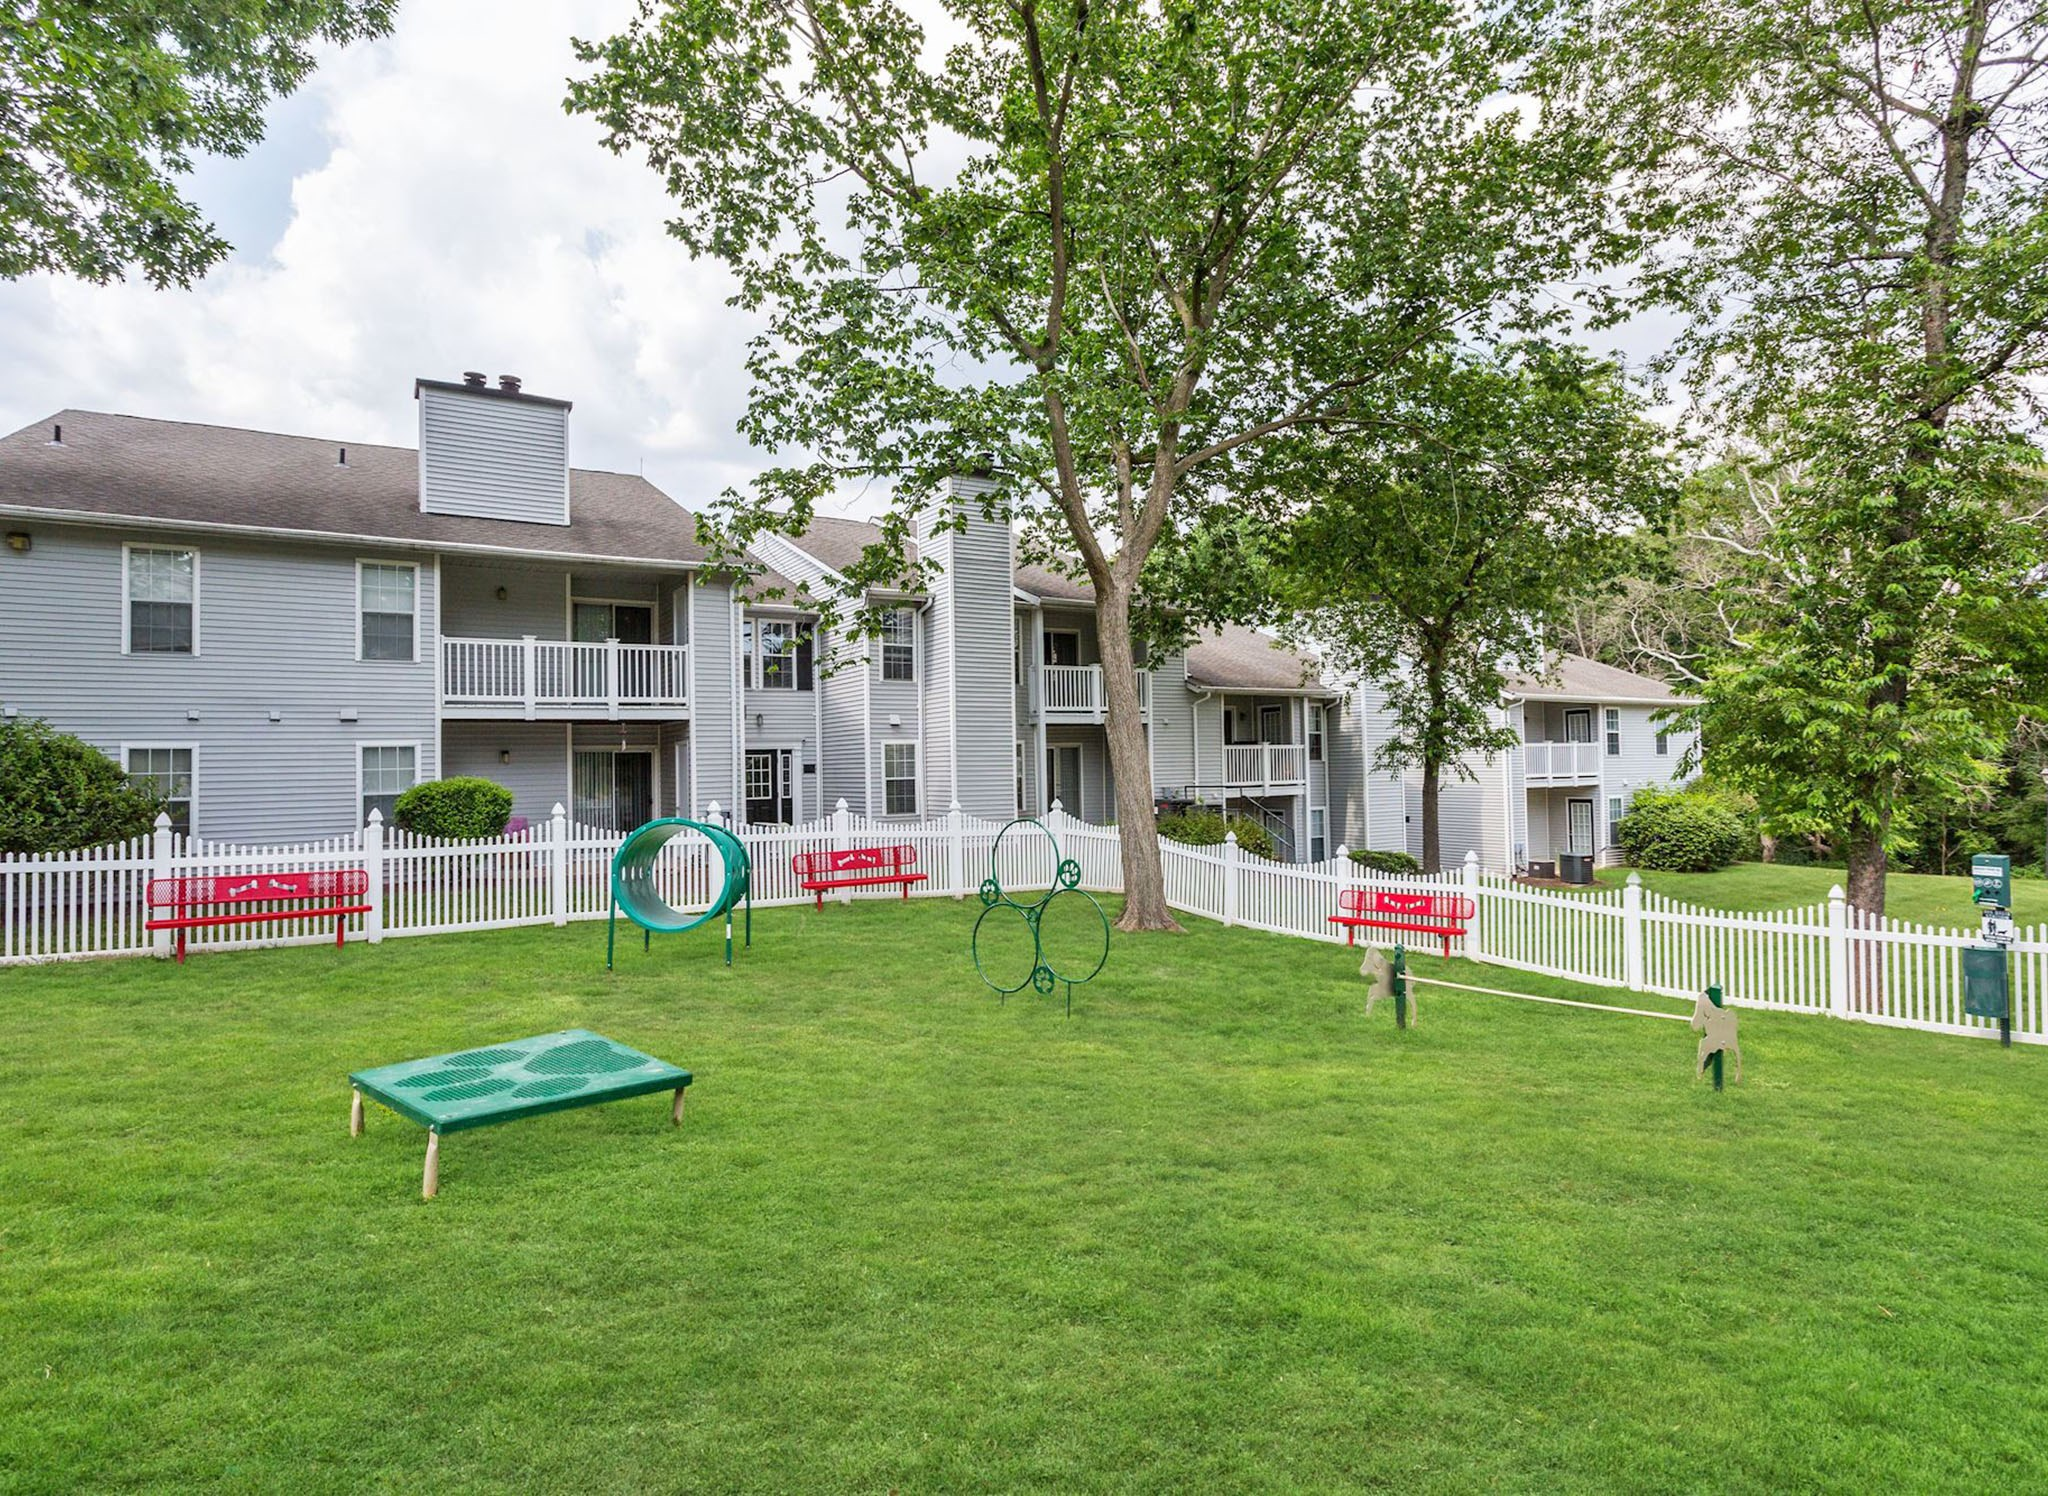 Apartments in Columbia Maryland for Rent - Hamilton at Kings Place Dog Park